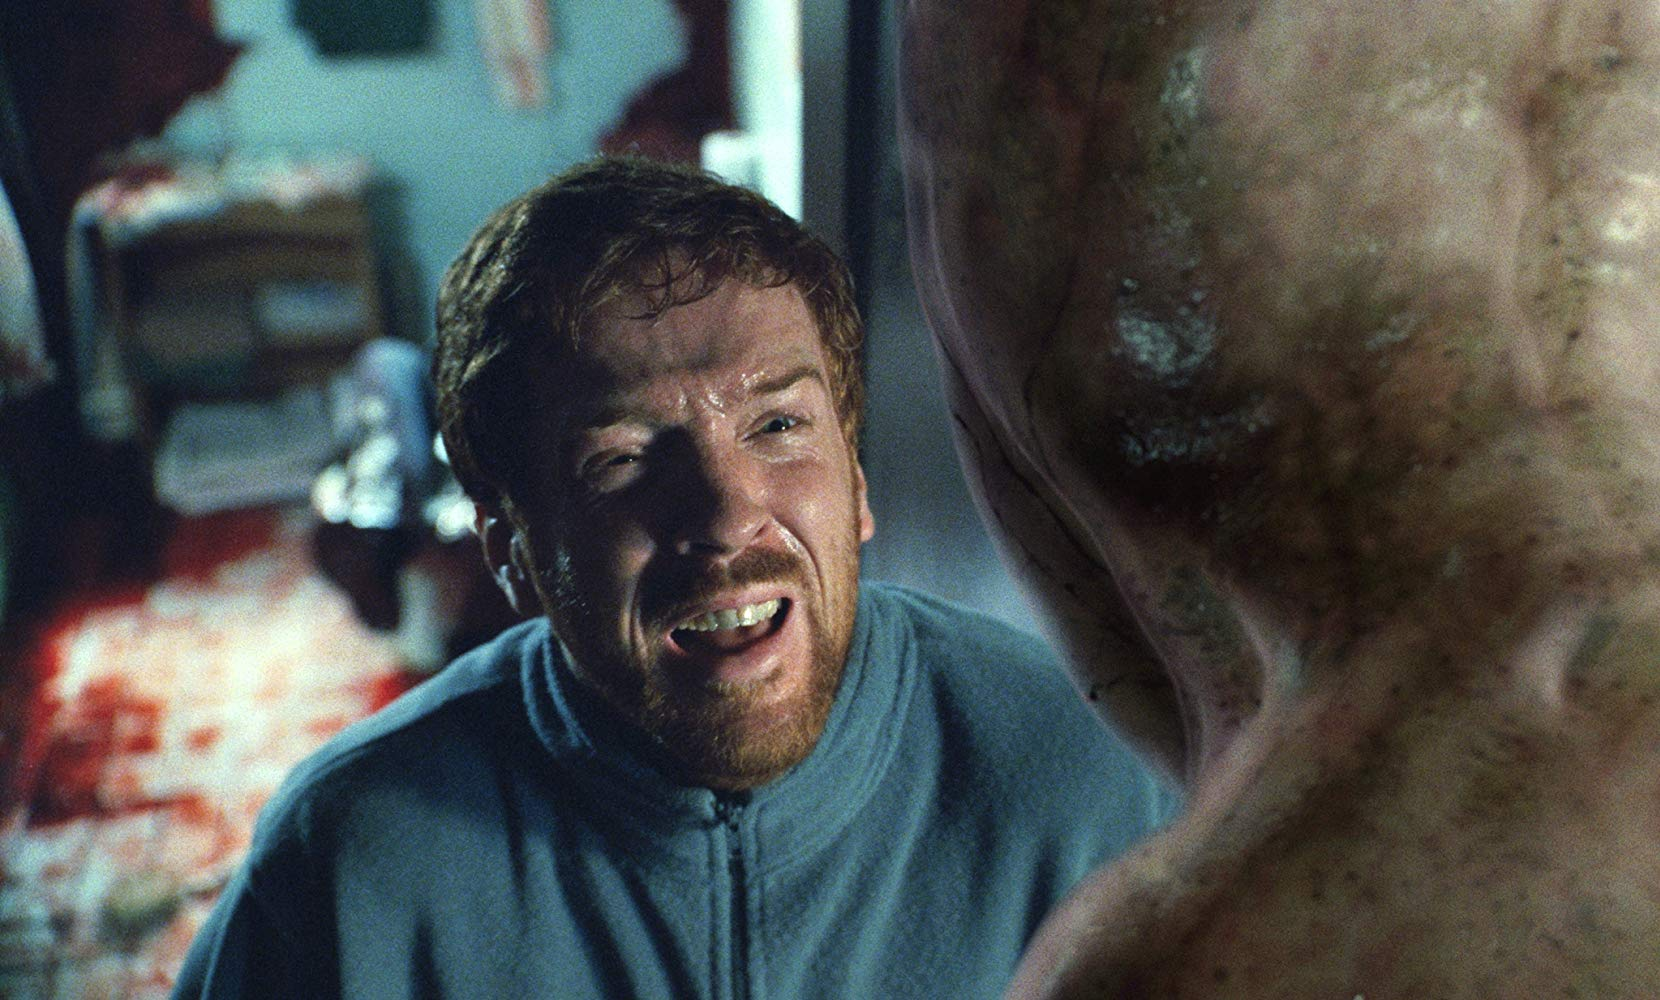 Damian Lewis encounters an alien creature in Dreamcatcher (2003)